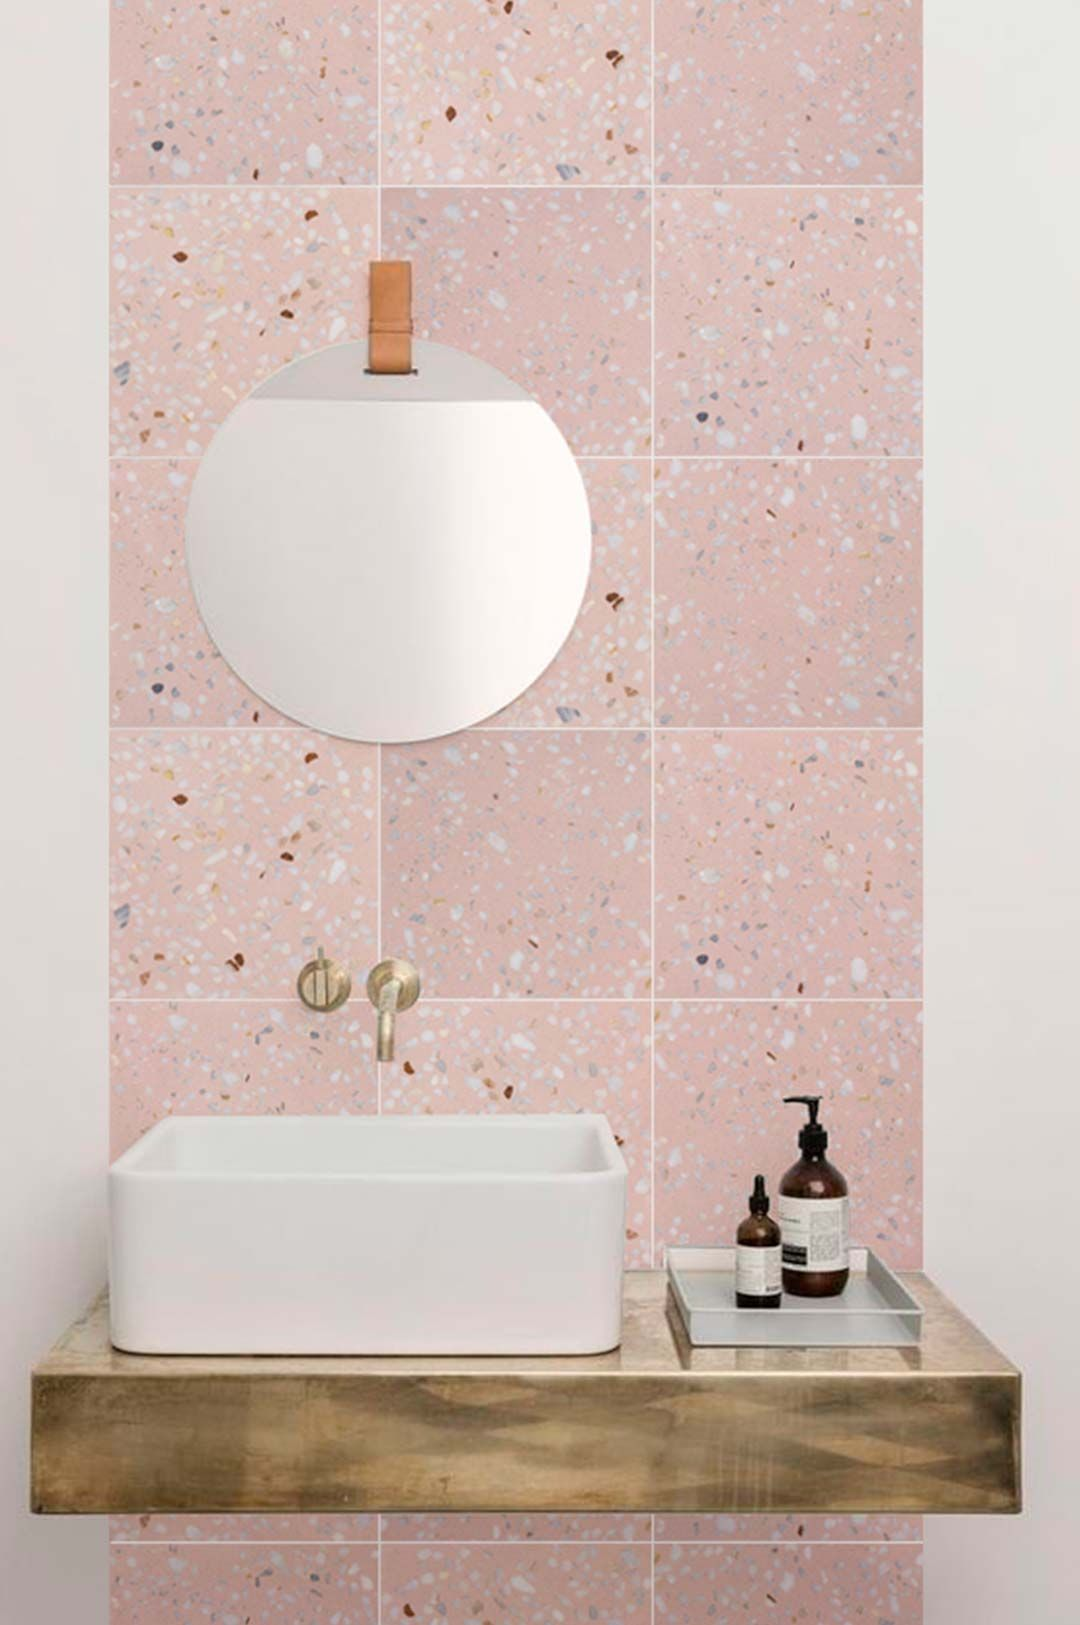 Pin By Lalola On India Mahdavi In 2020 Pink Bathroom Bathroom Wall Tile Mosaic Bathroom Tile